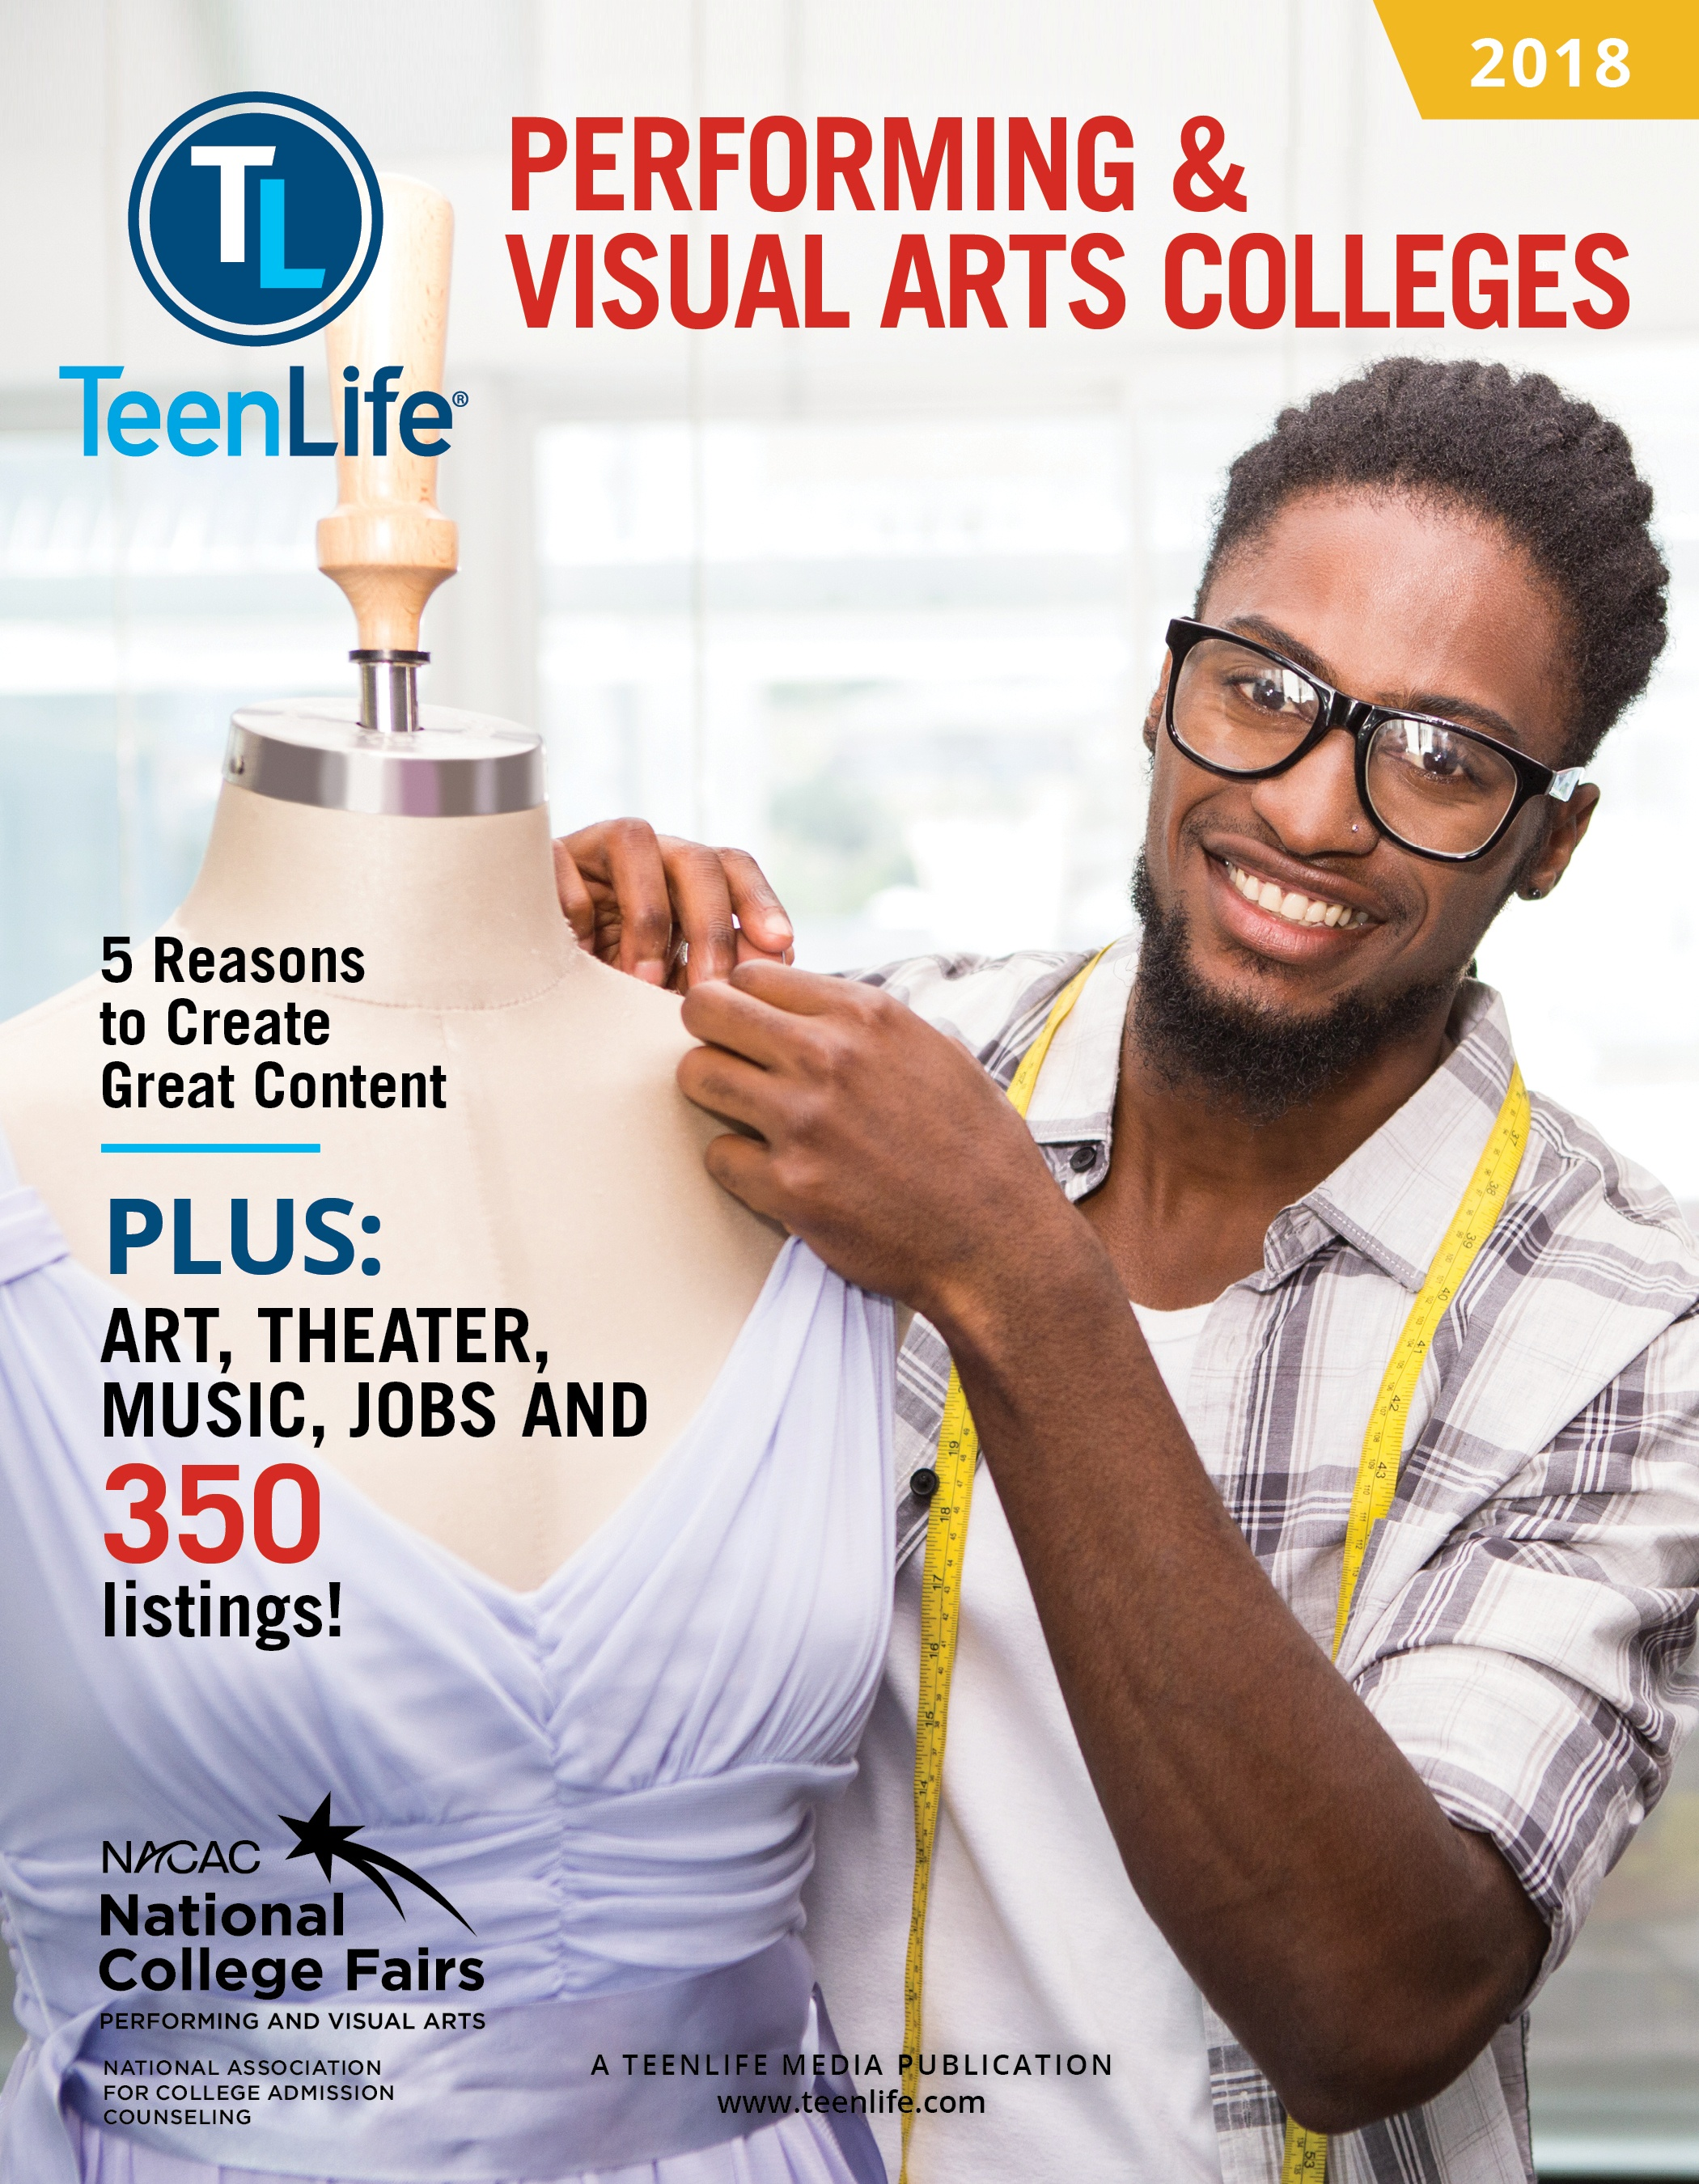 Guide to Performing & Visual Arts Colleges 2018-TeenLife